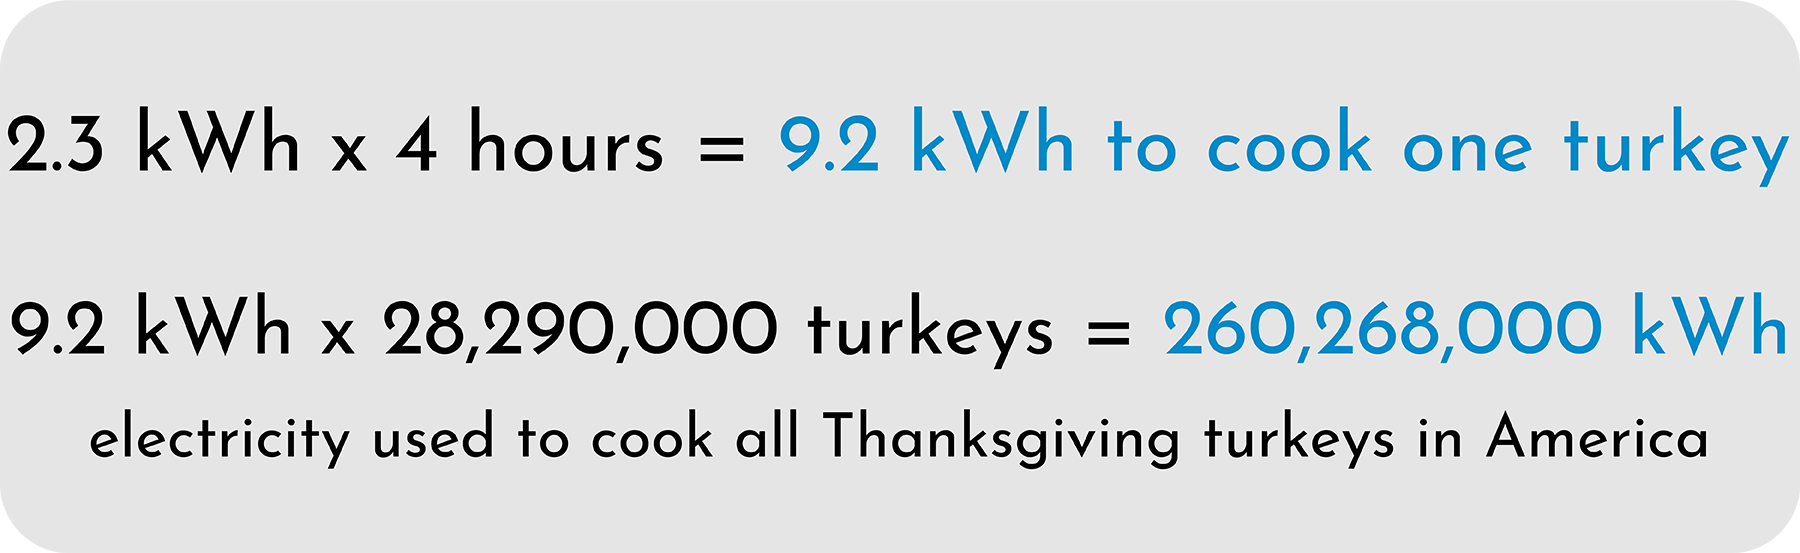 Turkey Cooking Electricity Math